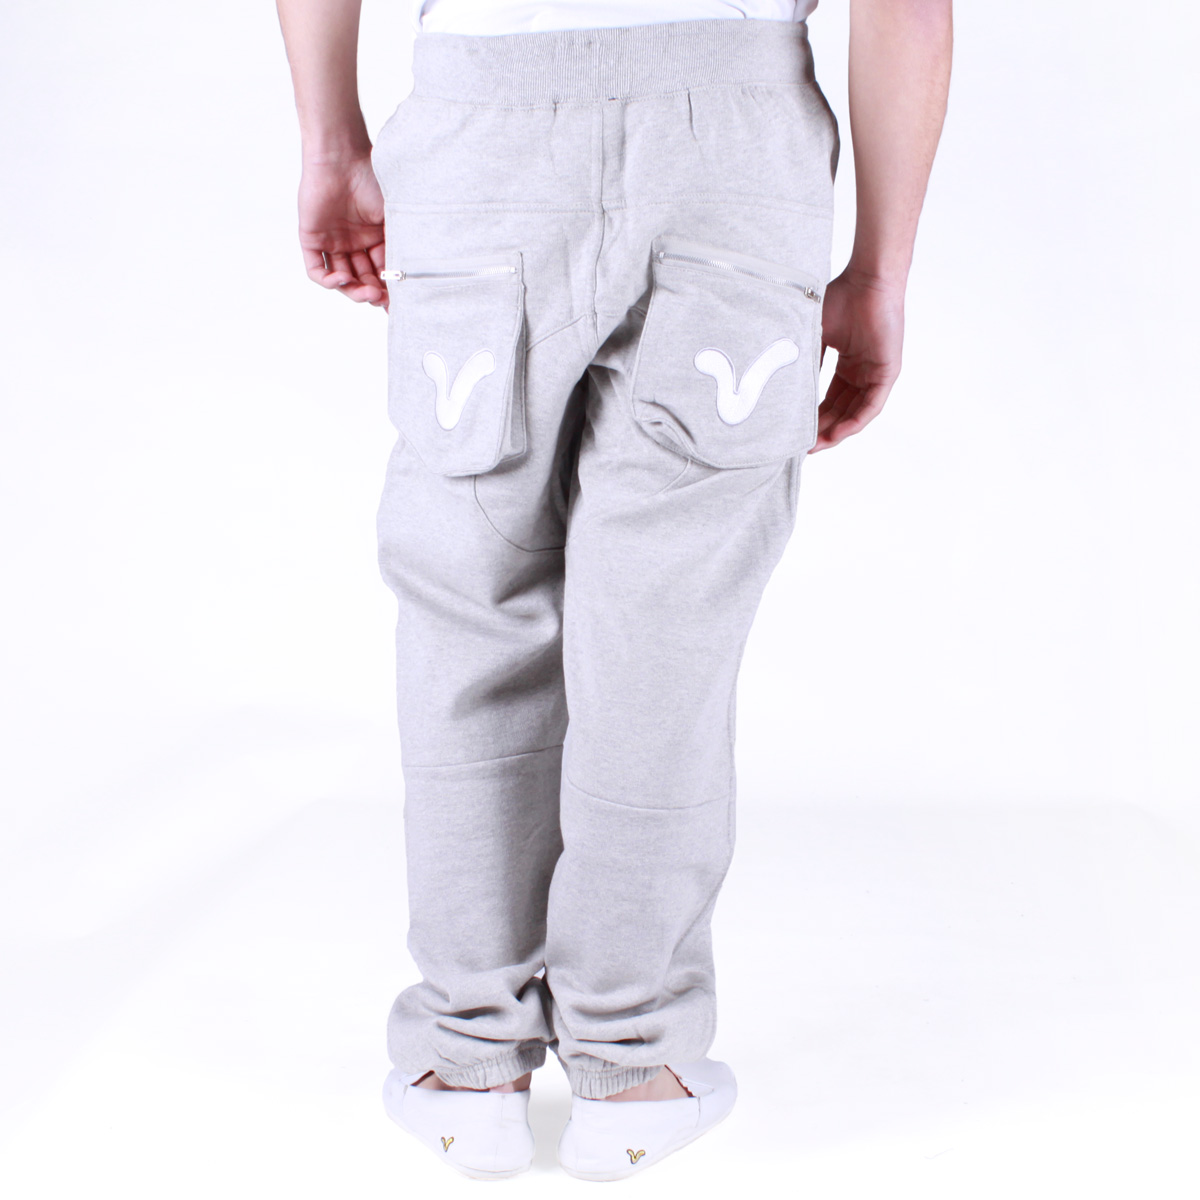 New-Mens-Voi-Jeans-Designer-VI-Diver-Joggers-in-Charcoal-or-Grey-Free-P-P-WD